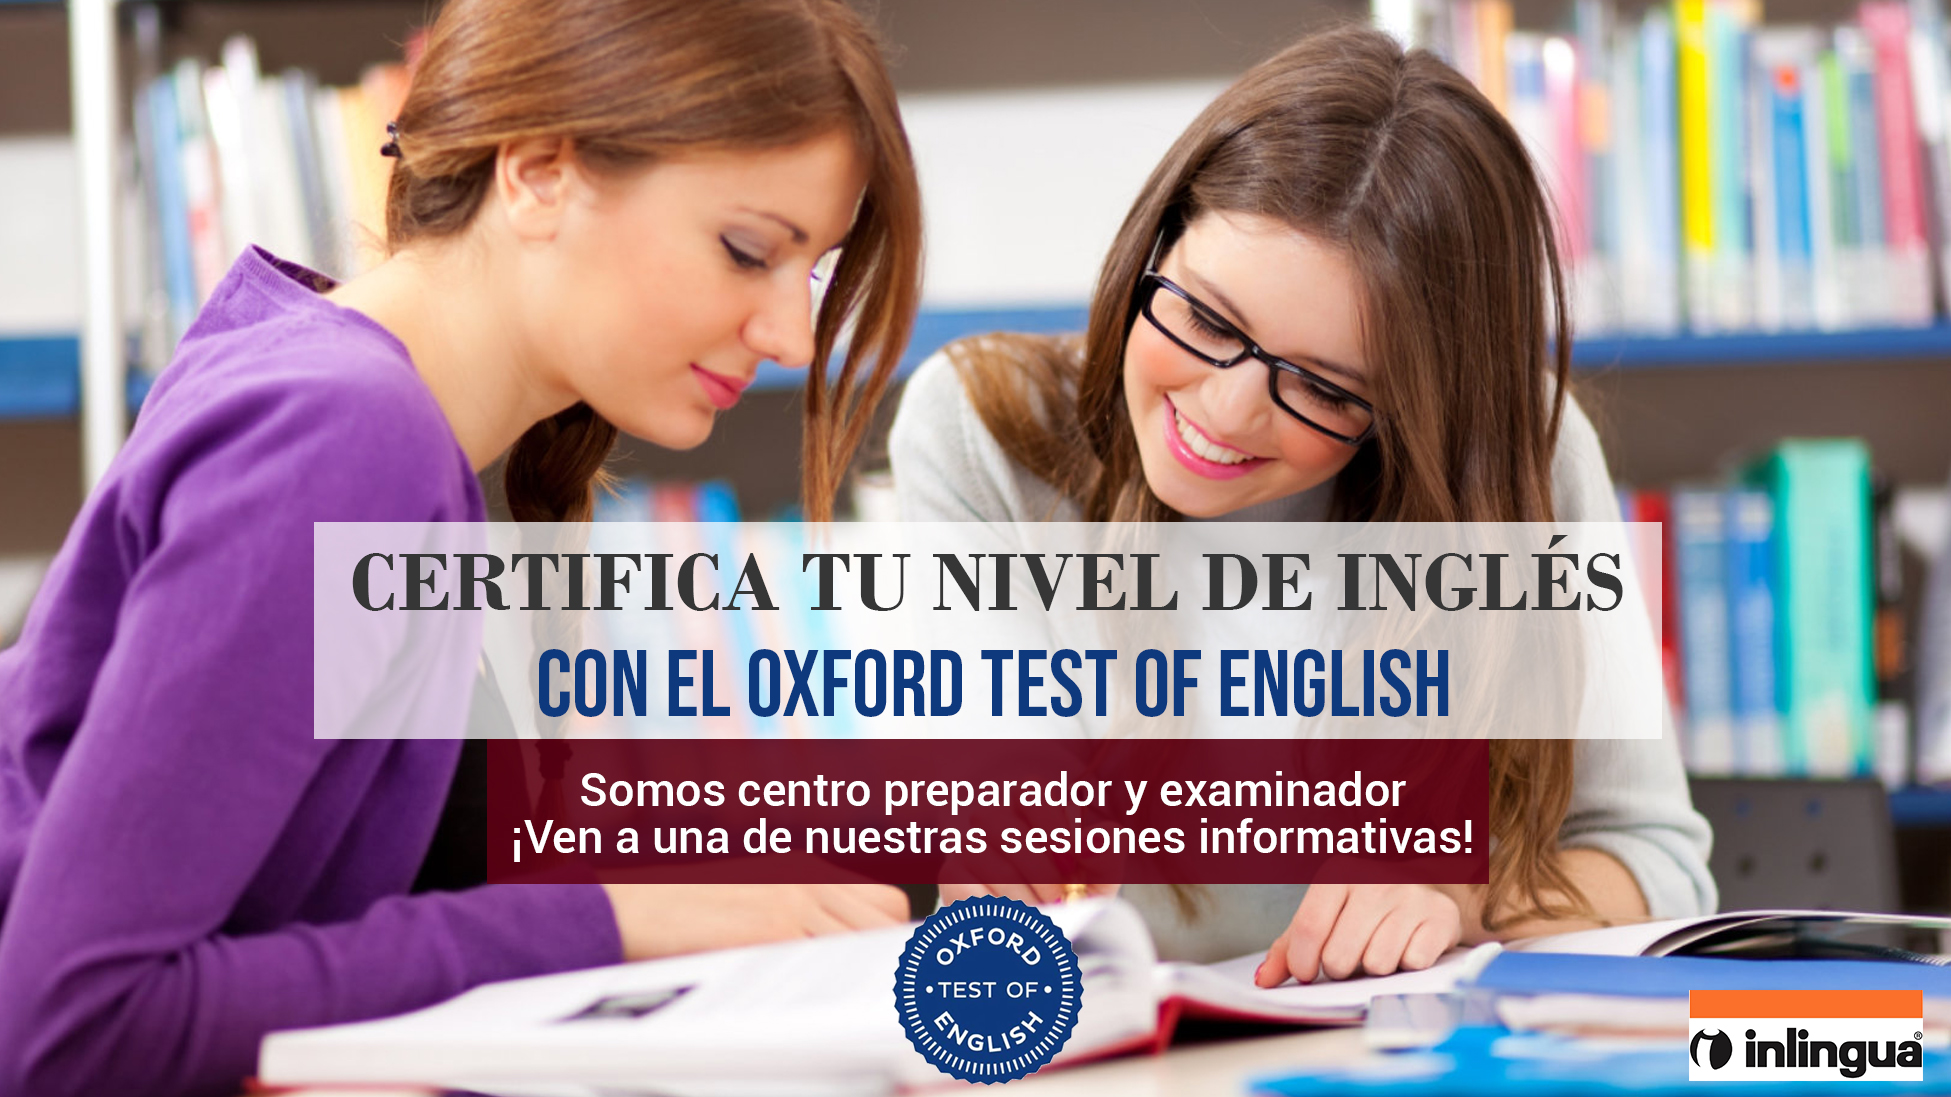 OXFORD TEST OF ENGLISH GRANADA VENTAJAS CAMBRIDGE